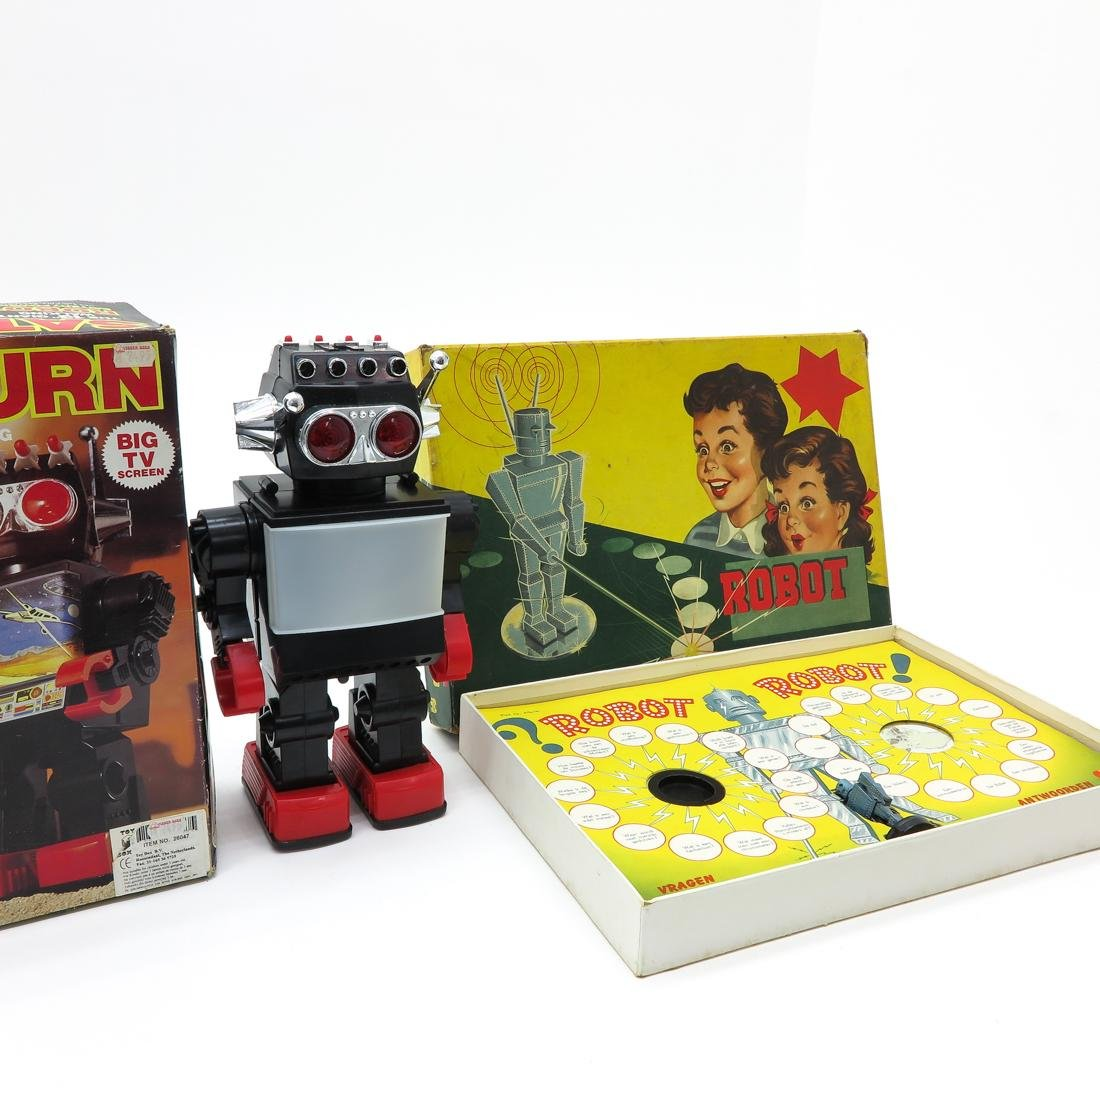 Saturn Giant Walking Robot and Robot Board Game - 2